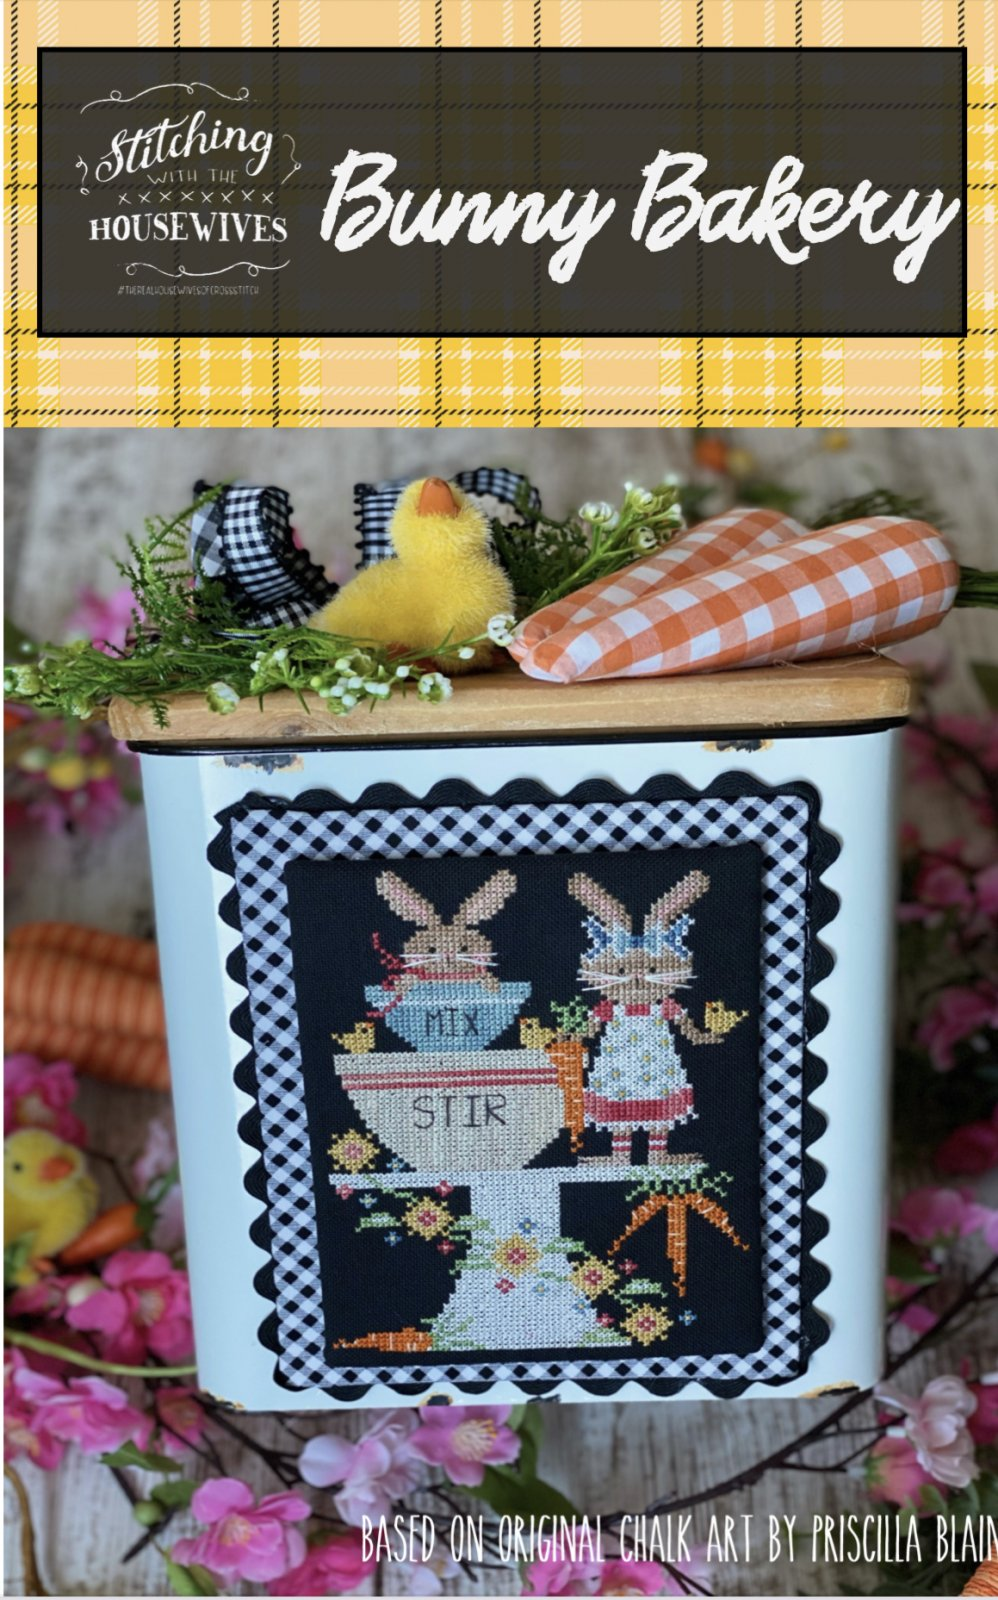 Bunny Bakery ~ Stitching with the Housewives